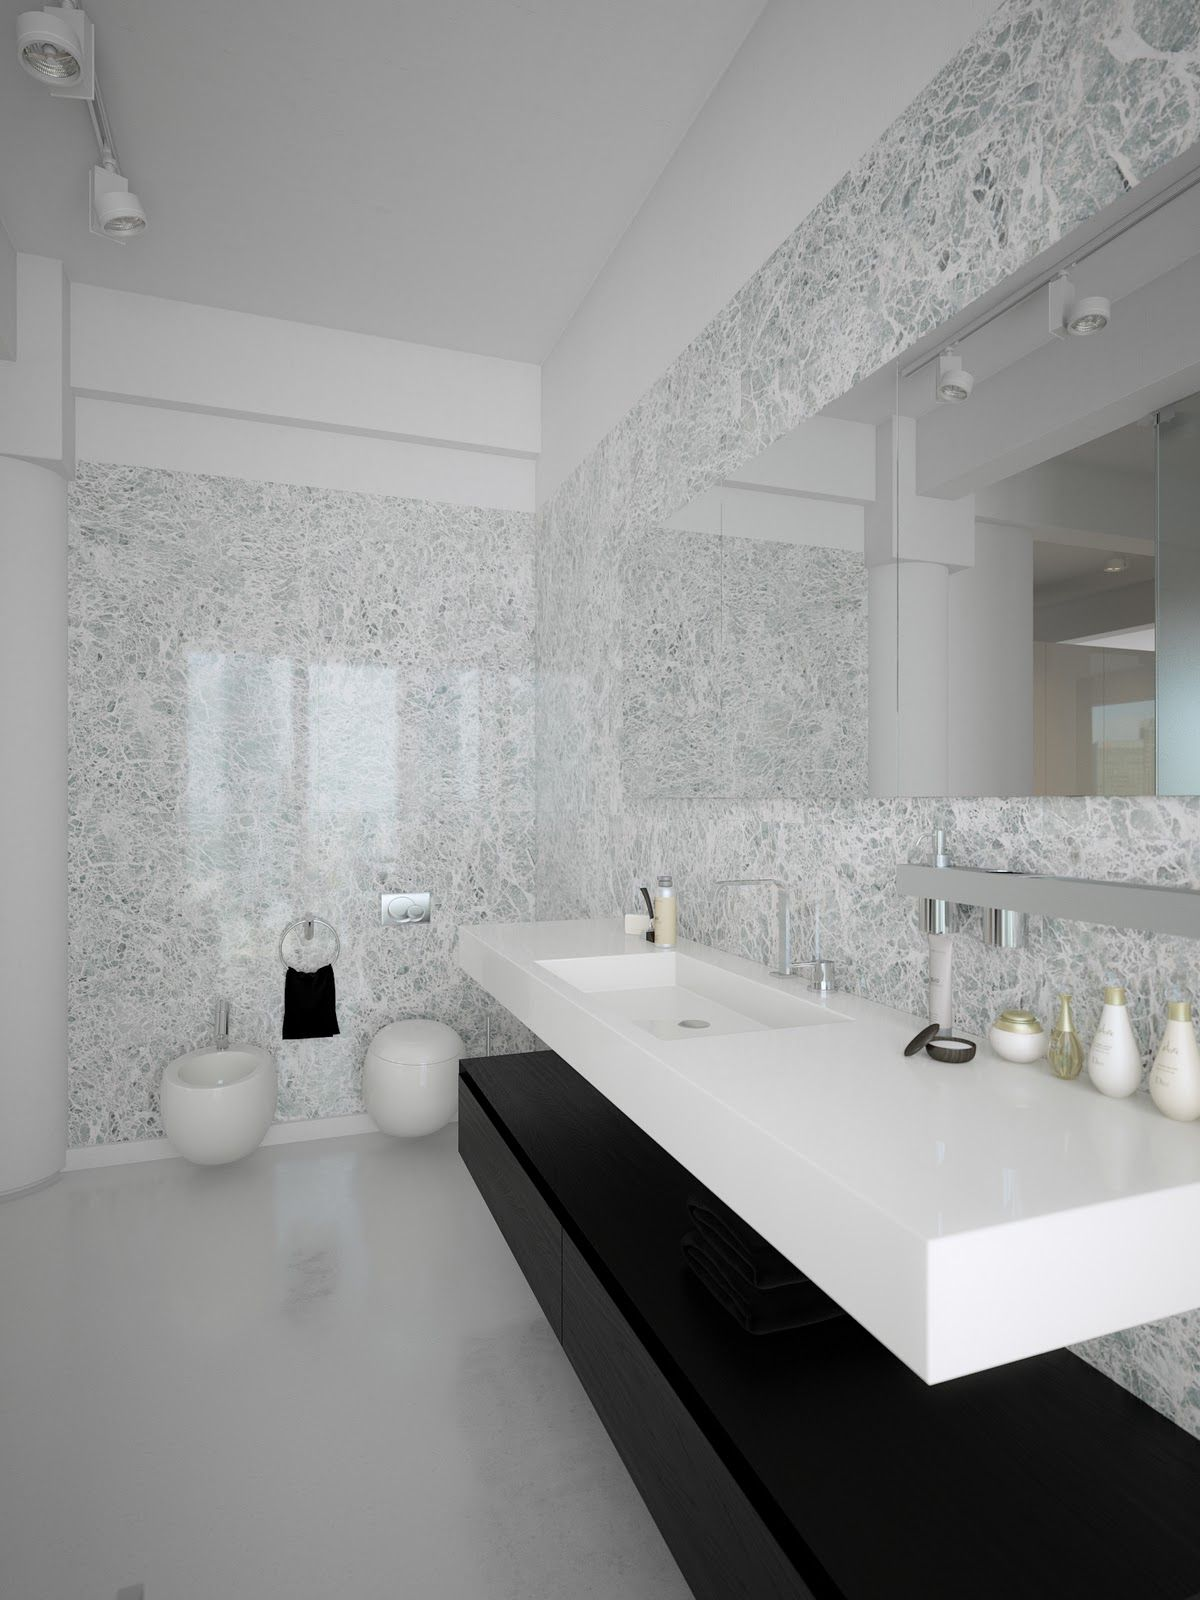 Coolest minimalist modern bathroom design contemporary for D bathroom designs